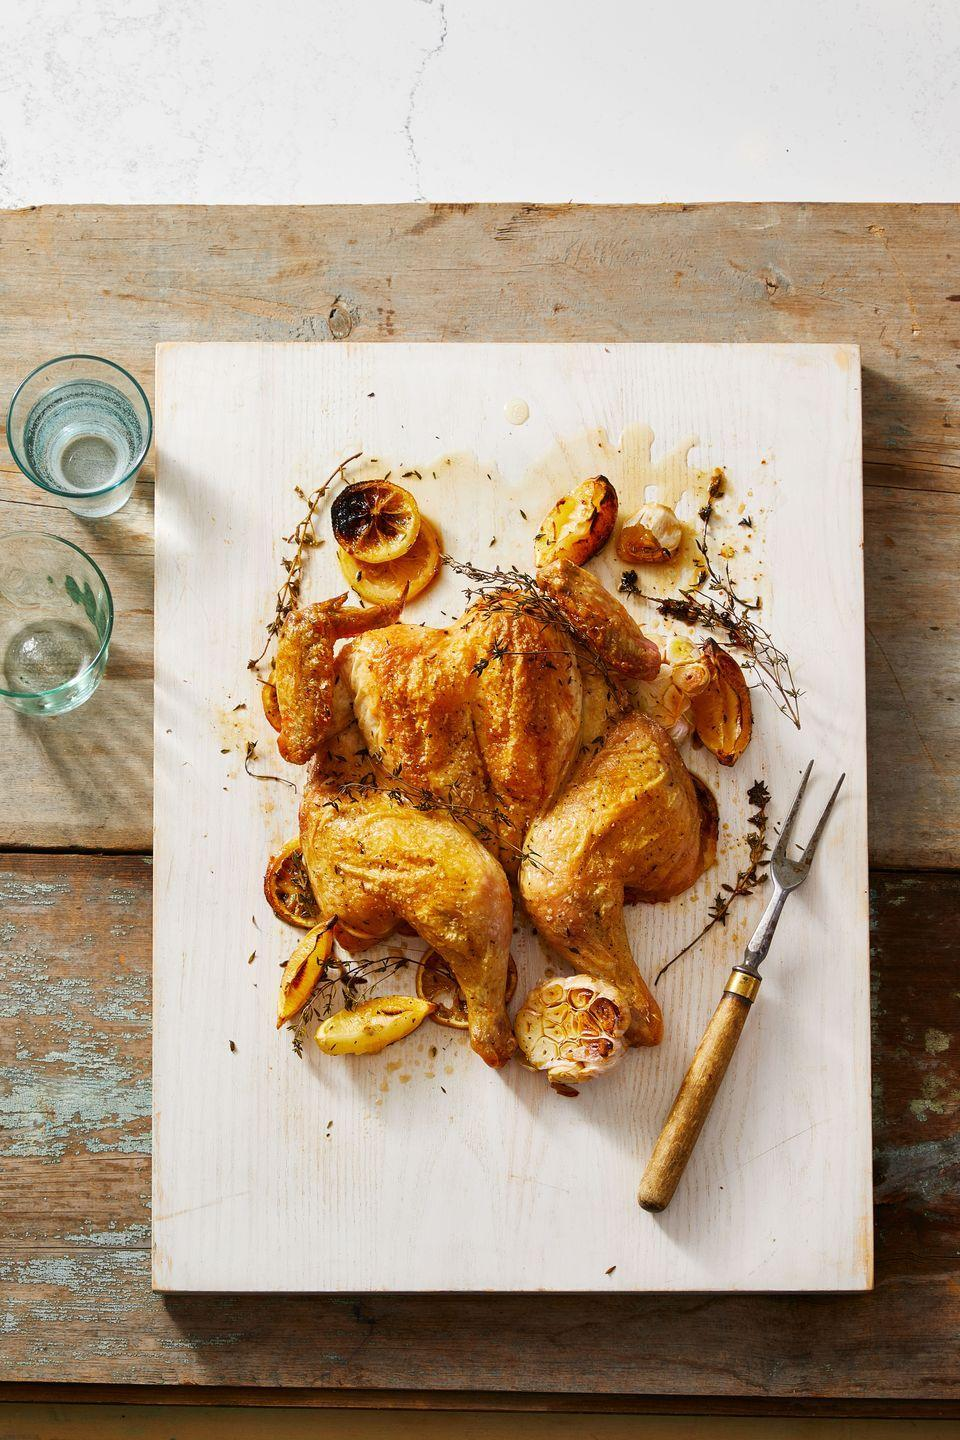 """<p>With these simple steps to spatchcocking (a.k.a. butterflying) a chicken, we've made sure that you'll have a perfectly cooked bird — in a lot less time than it normally takes.</p><p><em><a href=""""https://www.goodhousekeeping.com/food-recipes/cooking/a30383617/how-to-spatchcock-a-chicken/"""" rel=""""nofollow noopener"""" target=""""_blank"""" data-ylk=""""slk:Get the recipe for Spatchcock Chicken »"""" class=""""link rapid-noclick-resp"""">Get the recipe for Spatchcock Chicken »</a></em></p>"""